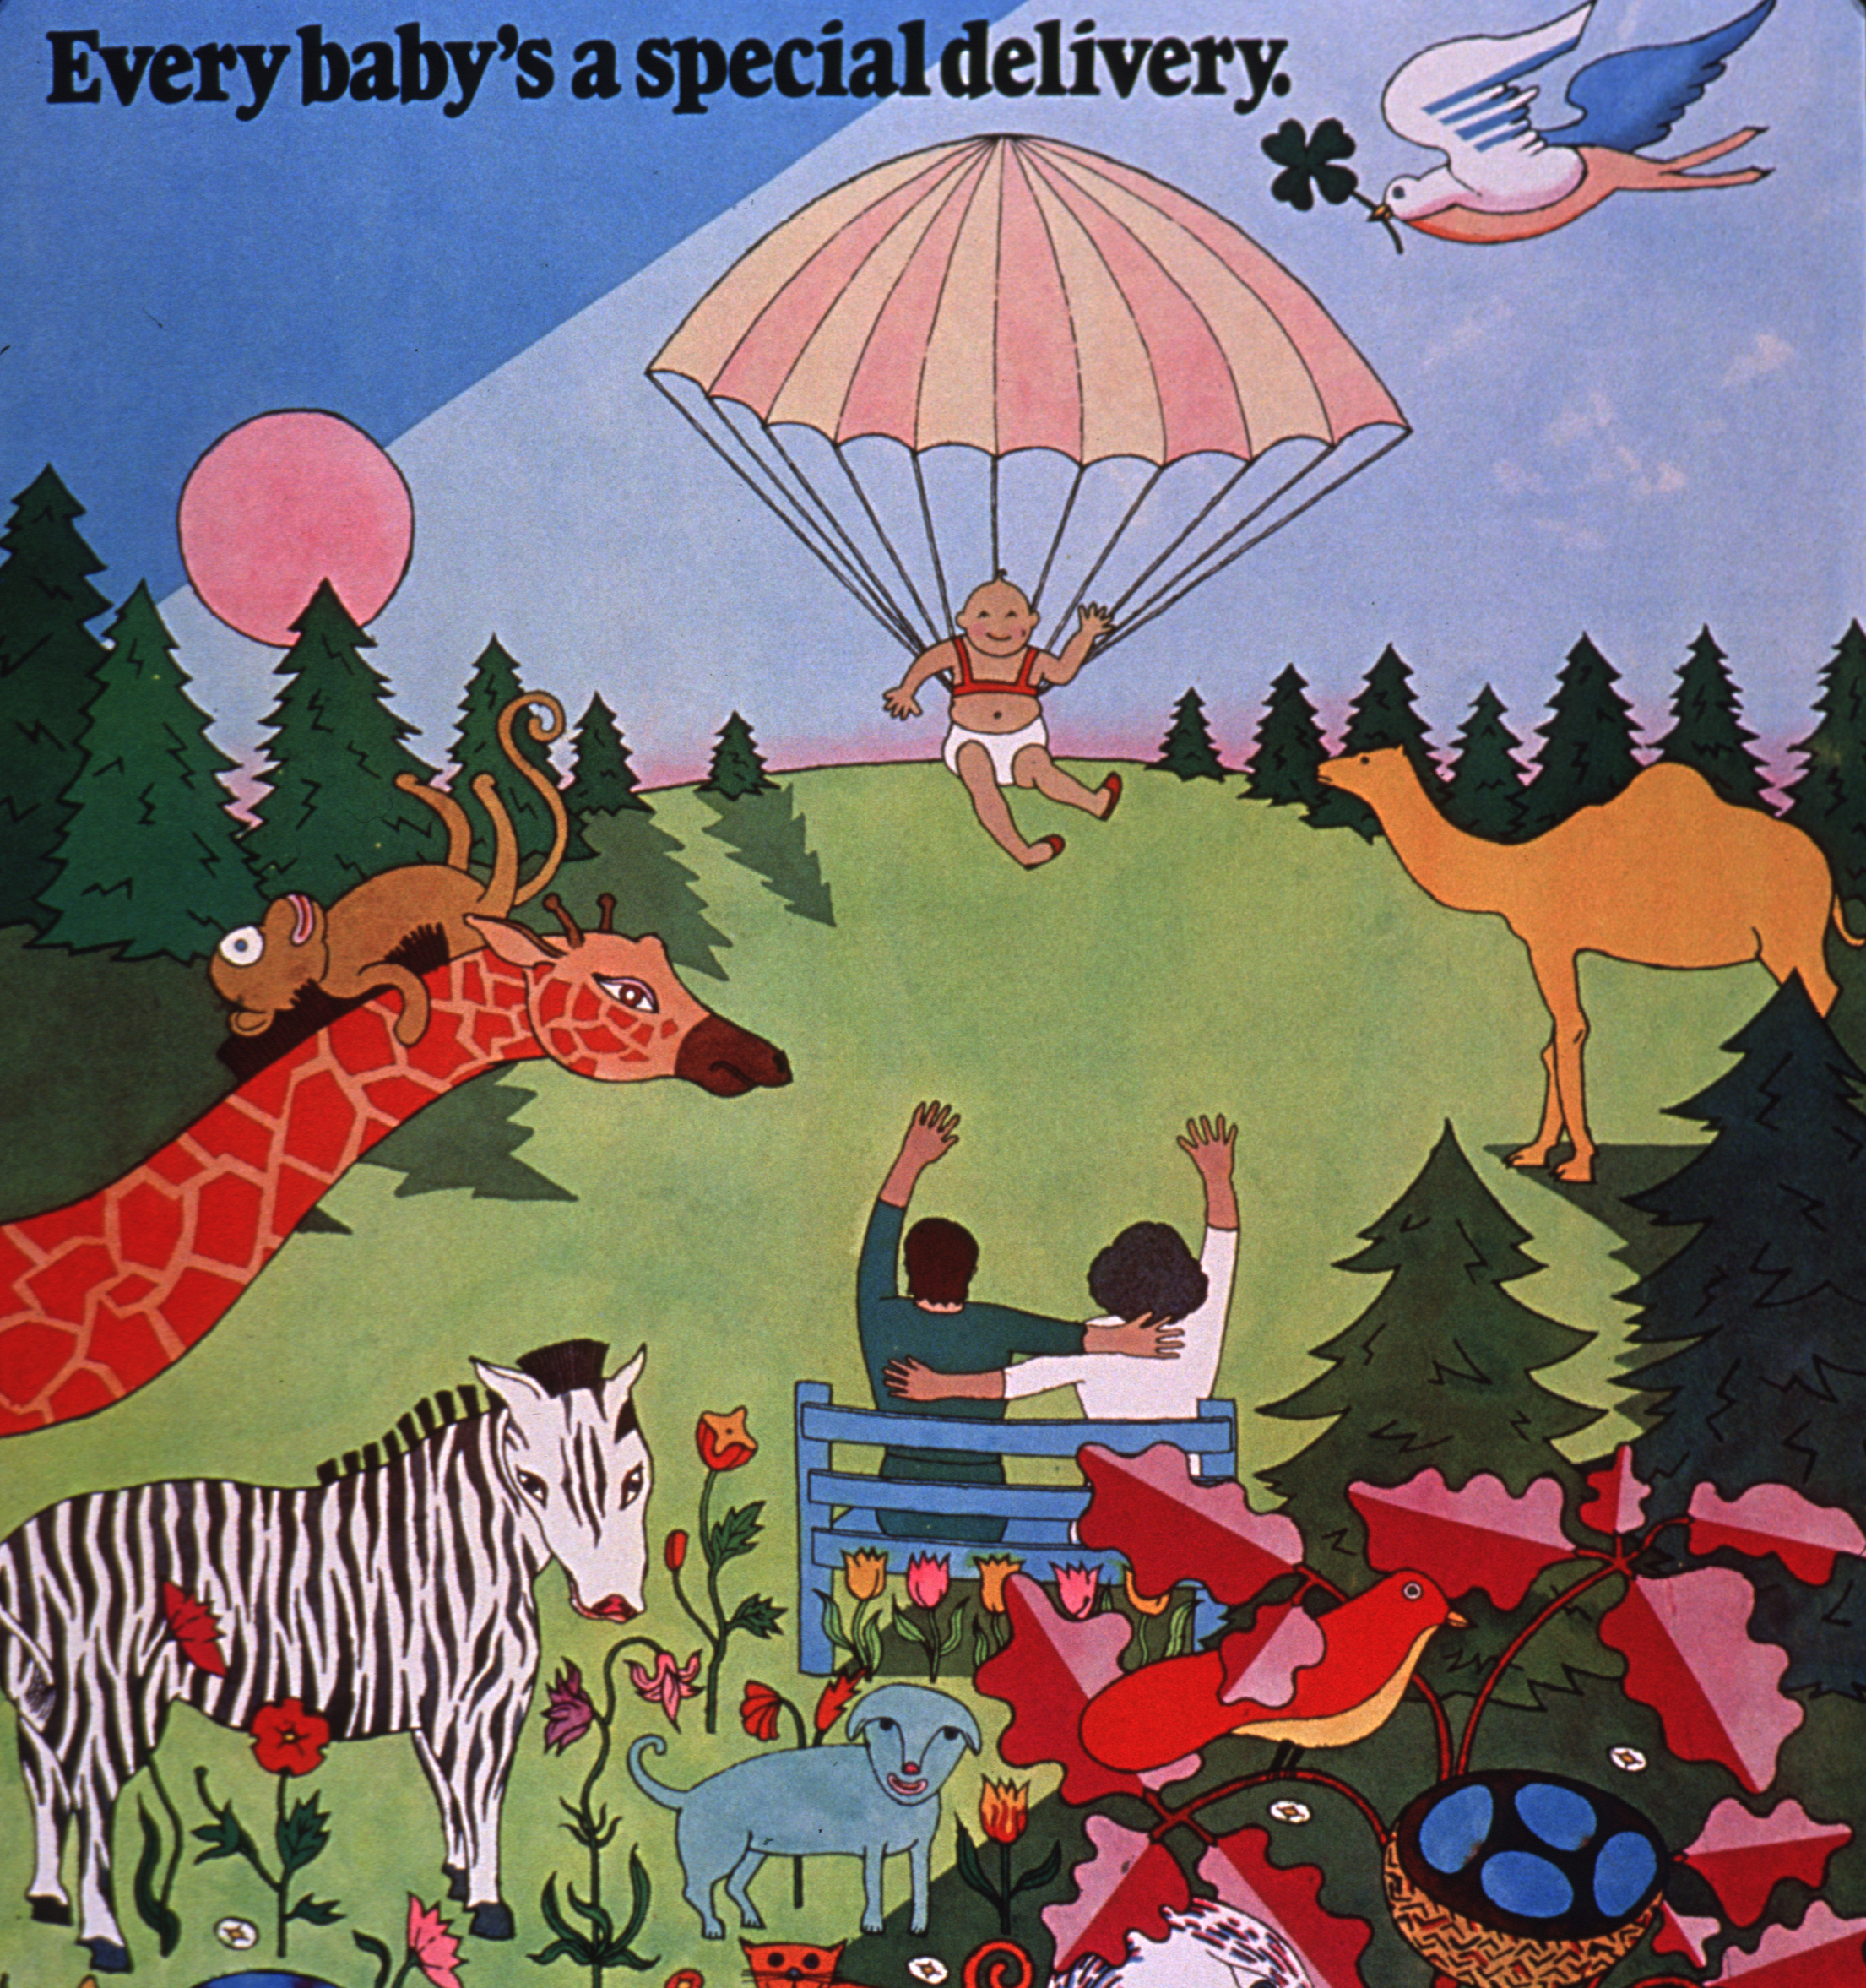 Baby parachuting down to two parents sitting on a park bench surrounded by animals; text says 'Every baby's a special deliver'